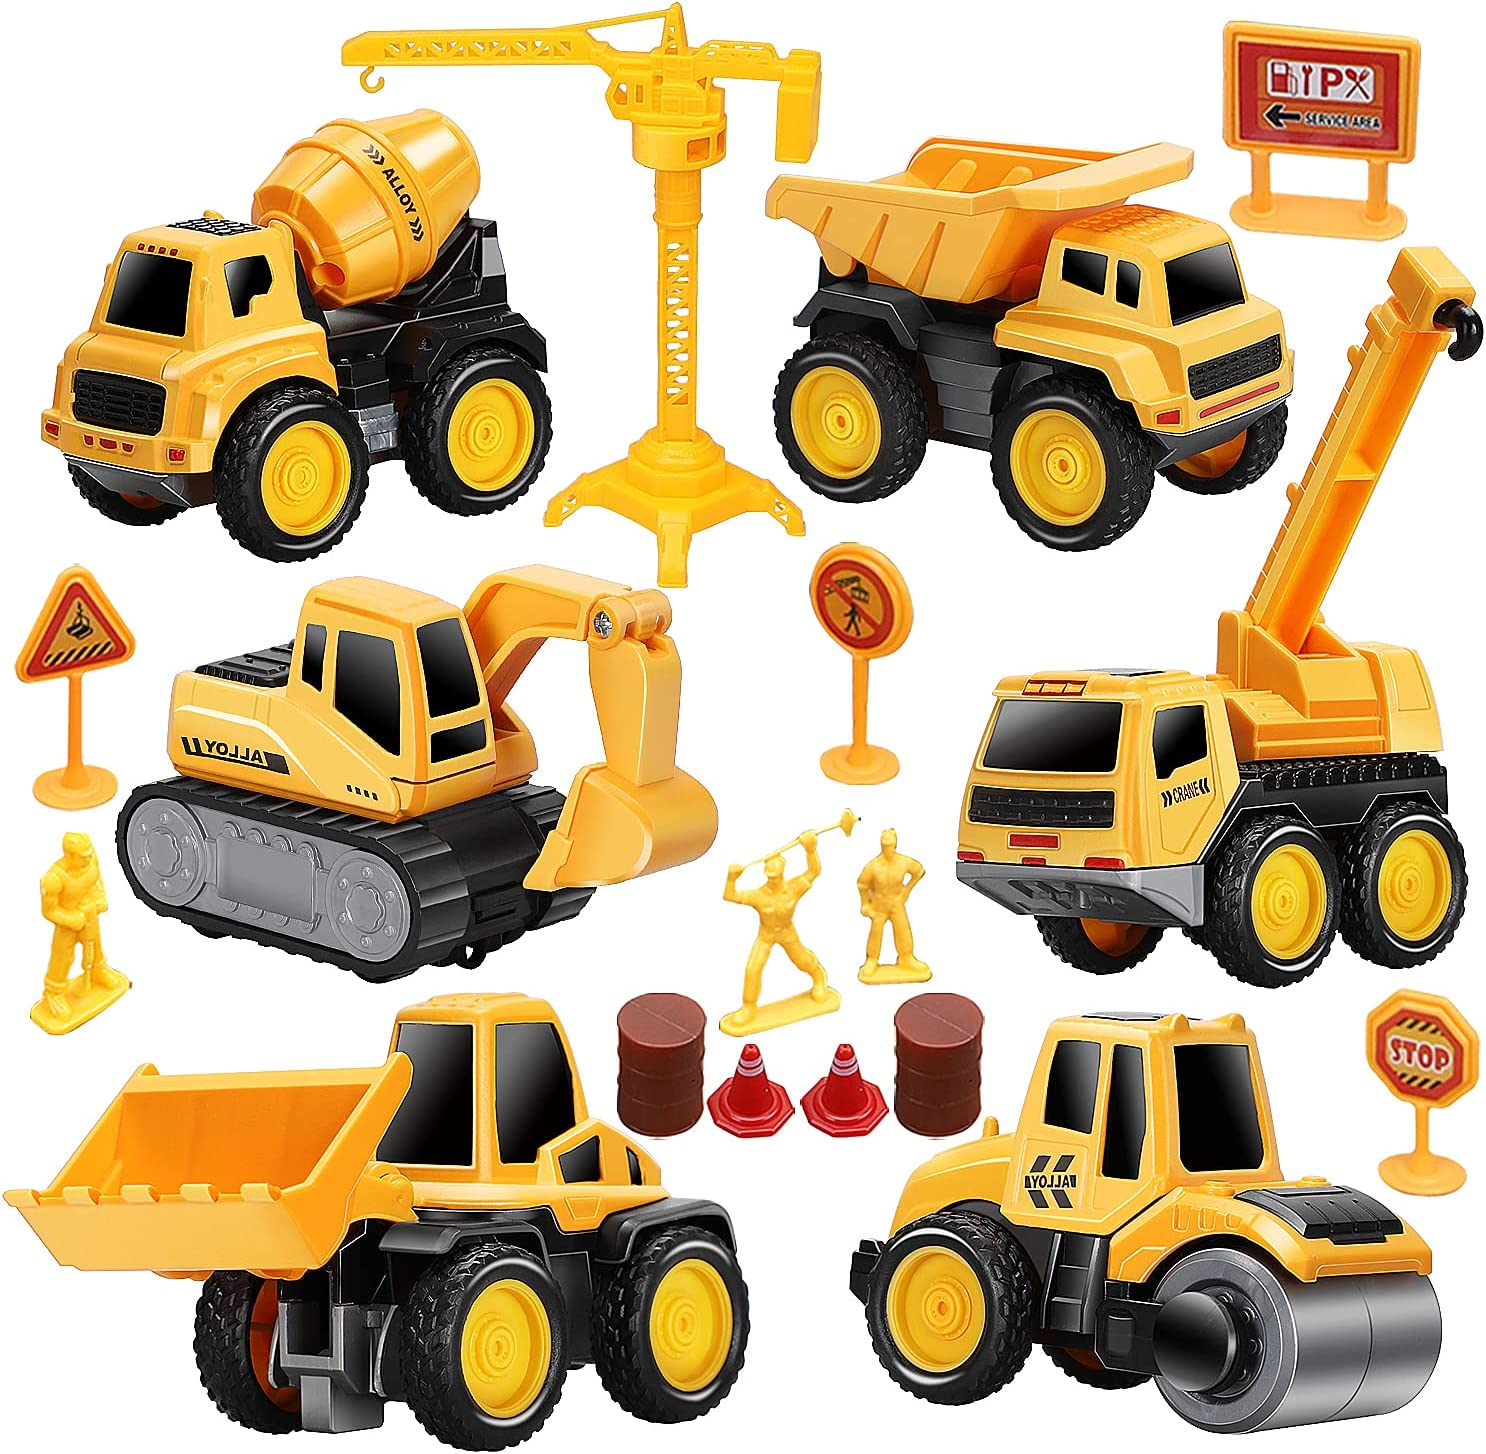 TOY Life Construction Vehicles Truck Sandbox Toy Set for Kids with 27.75x32.28 Inch Play Car Mat& 6 Construction Diecast Pull Back Cars -Construction Truck Tractor Excavator for Boy 2 3+ Year olds: Toys & Games